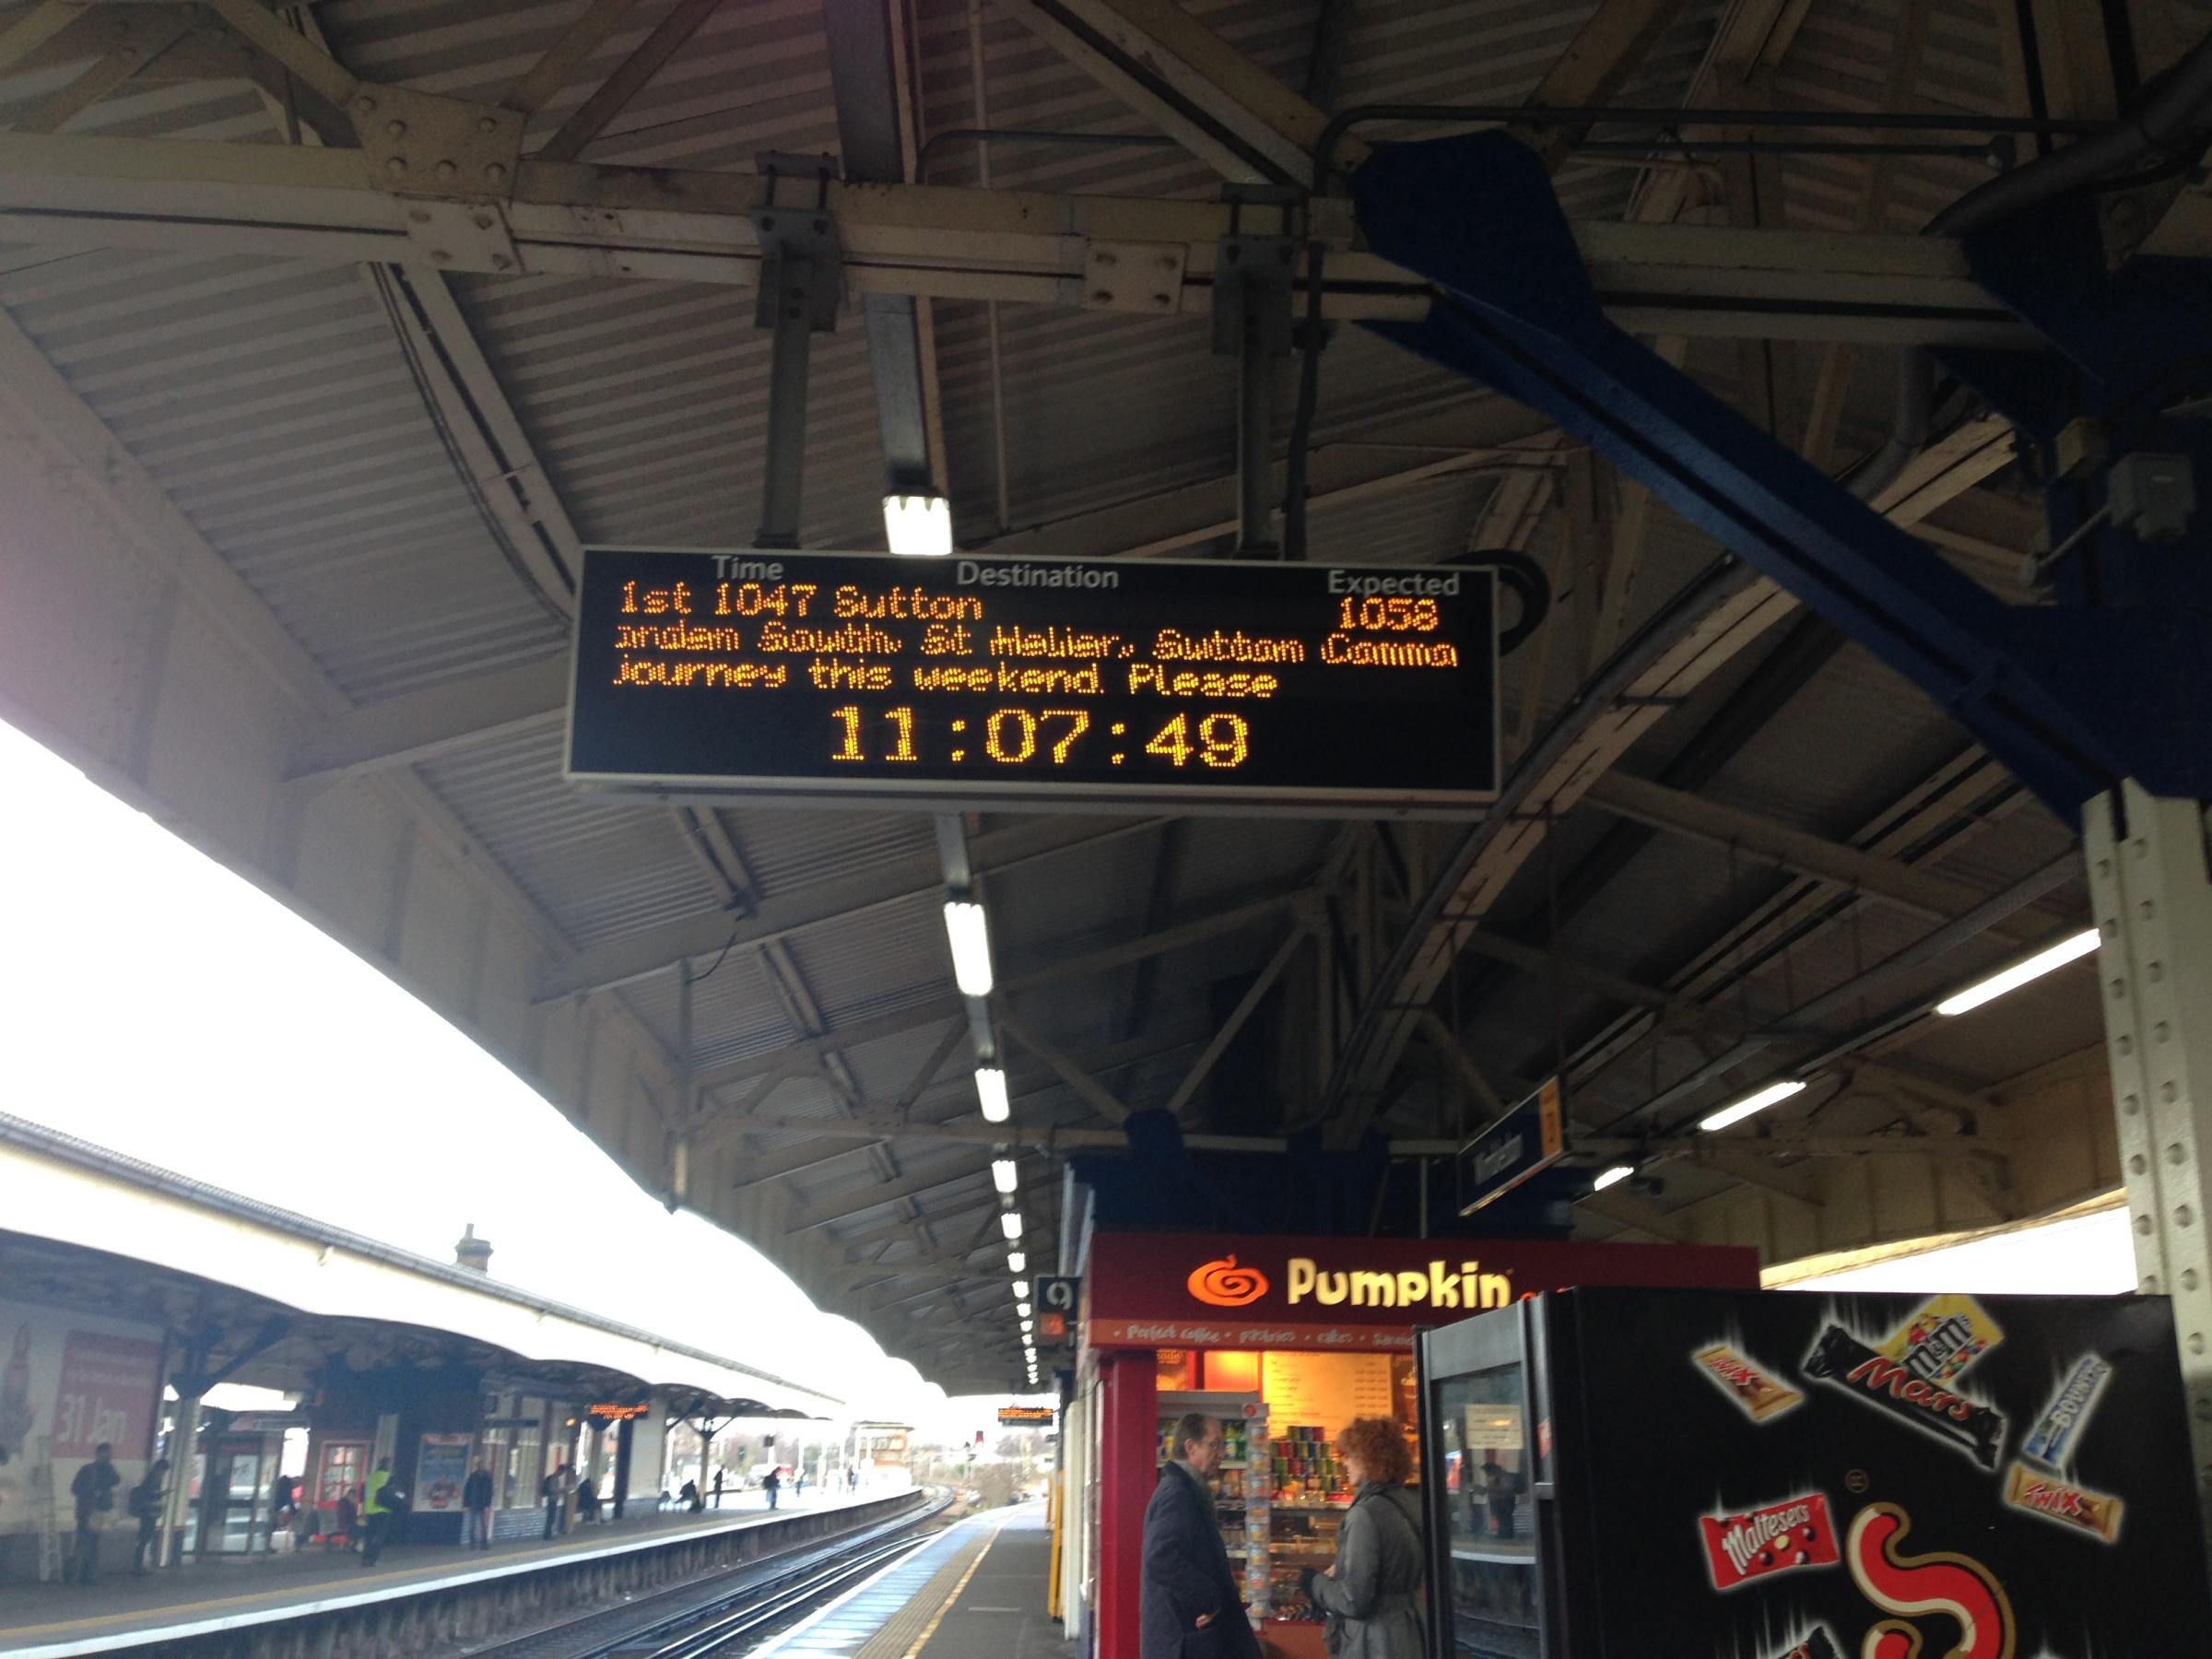 Signs advertising the delays are unclear